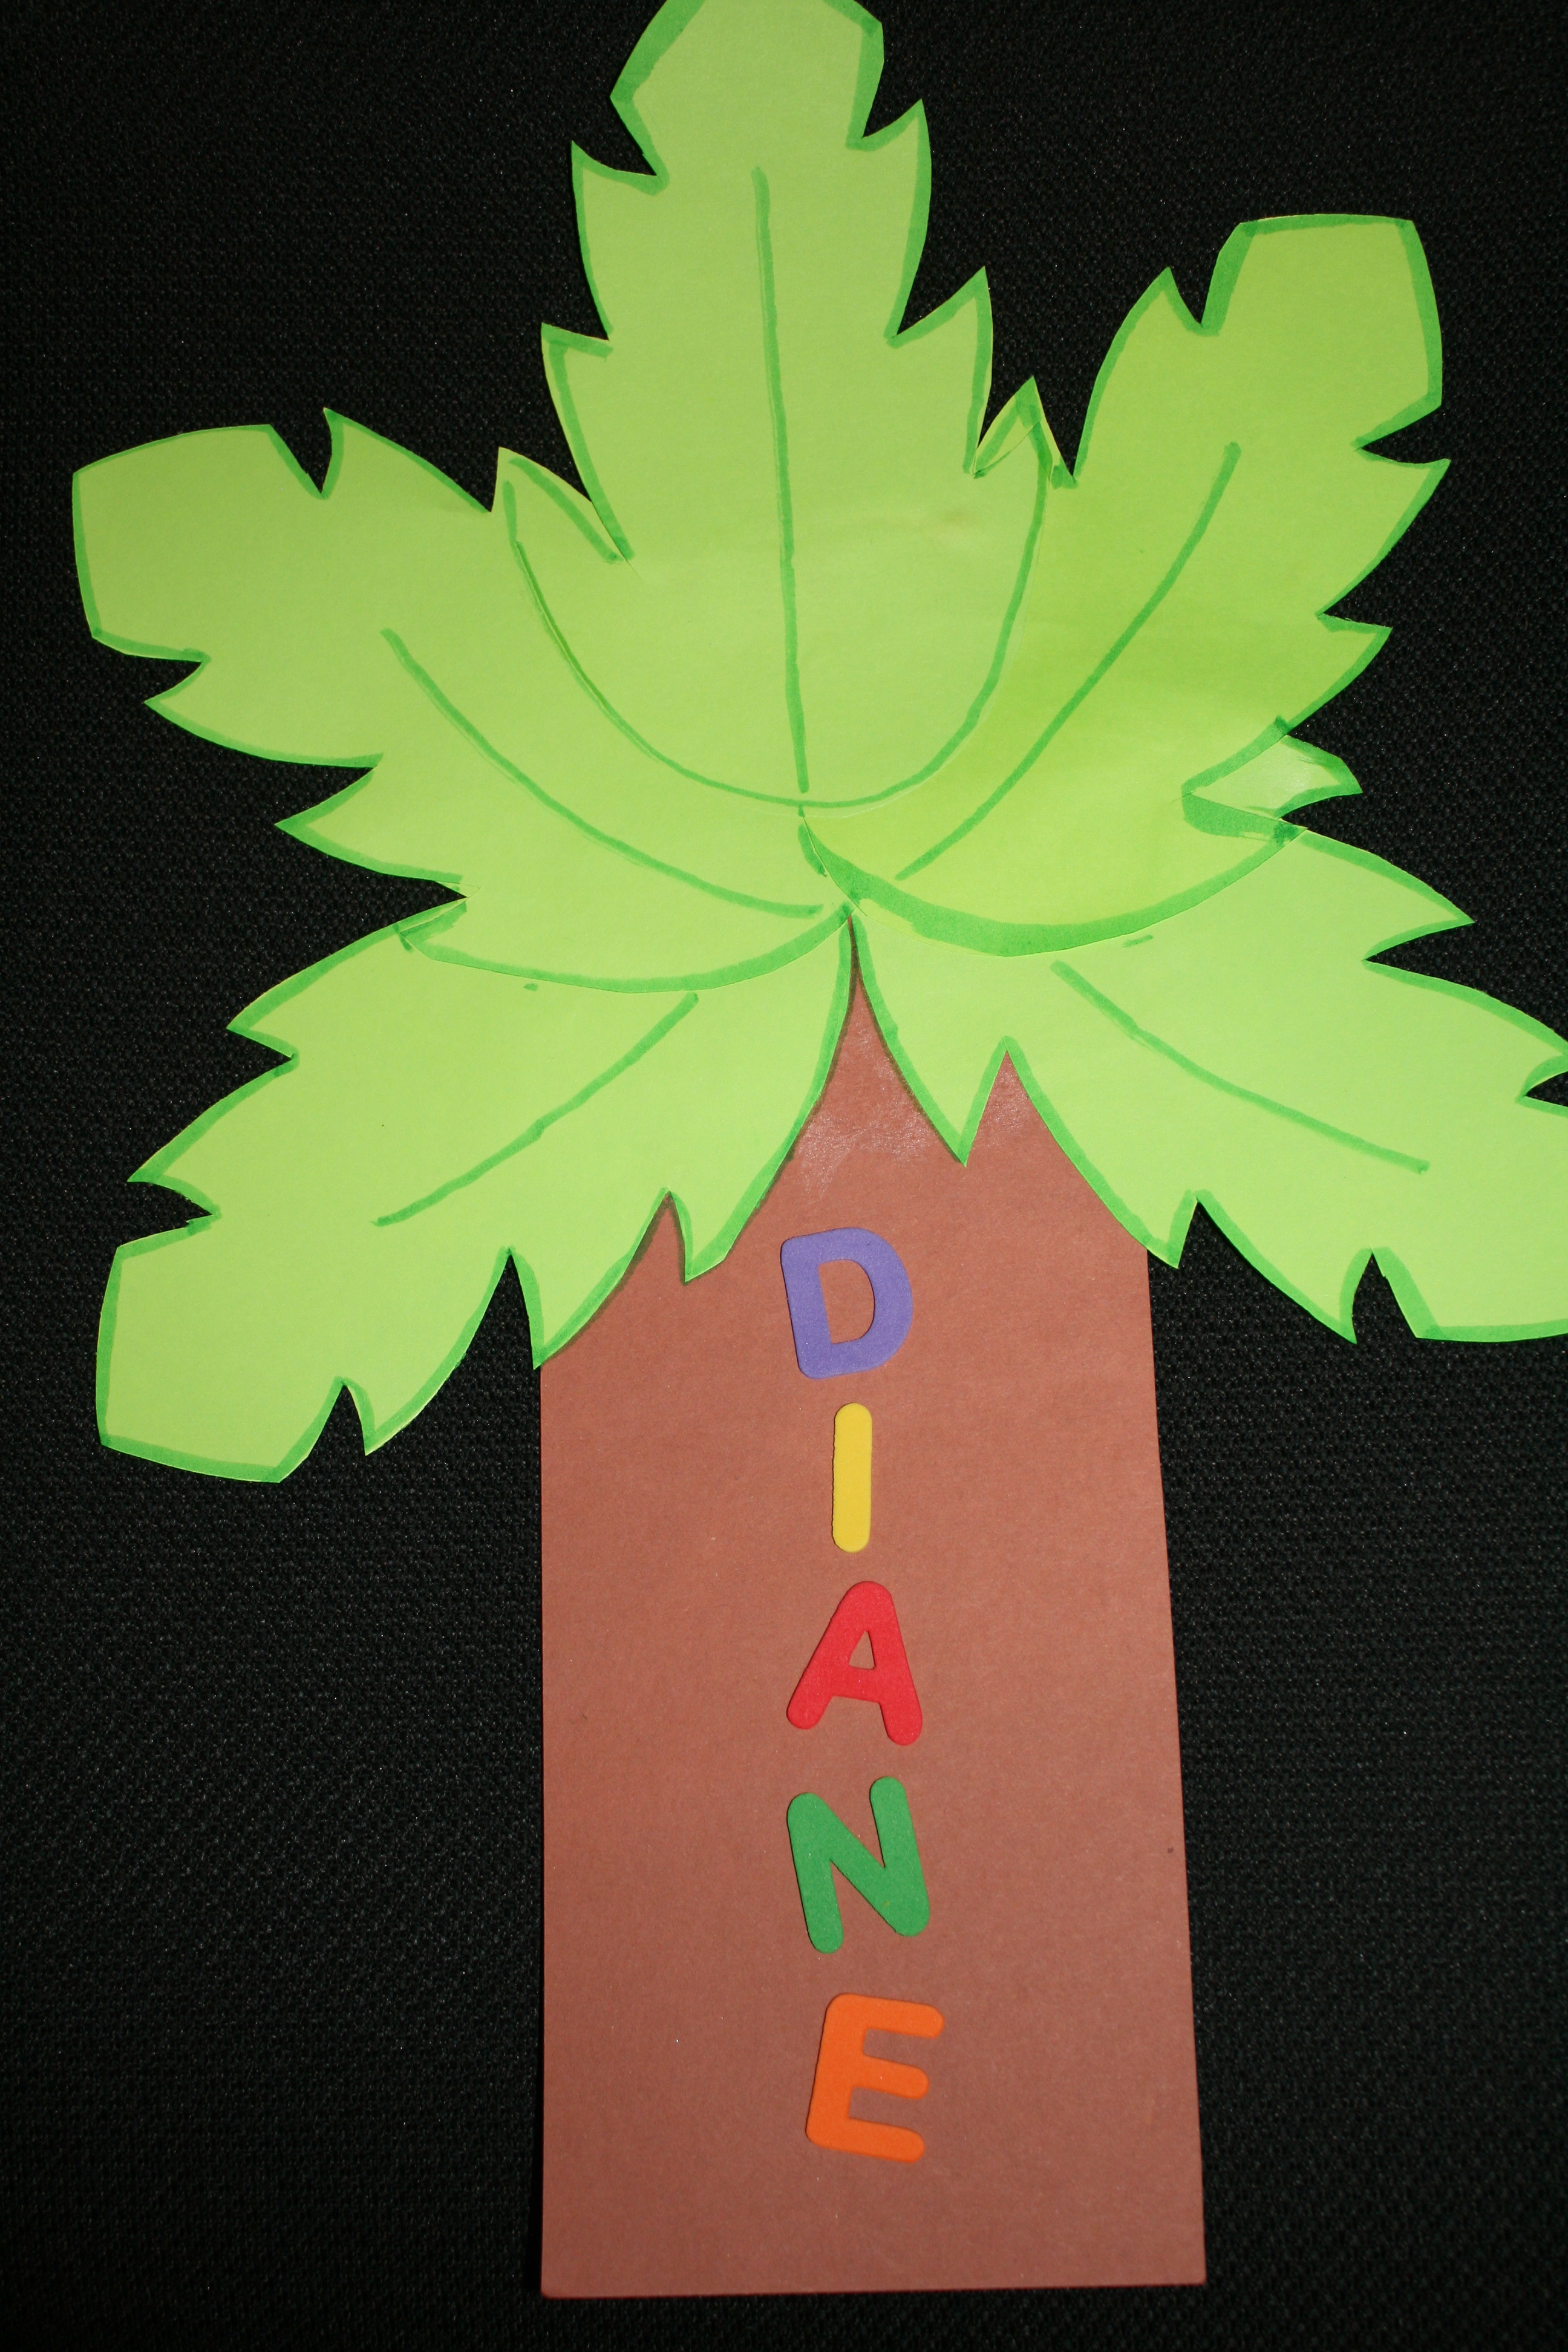 Chicka boom game, chicka boom activities, chicka boom art project, ideas for Chicka boom, back to school ideas, ideas for the first day of school, back to school bulletin boards,